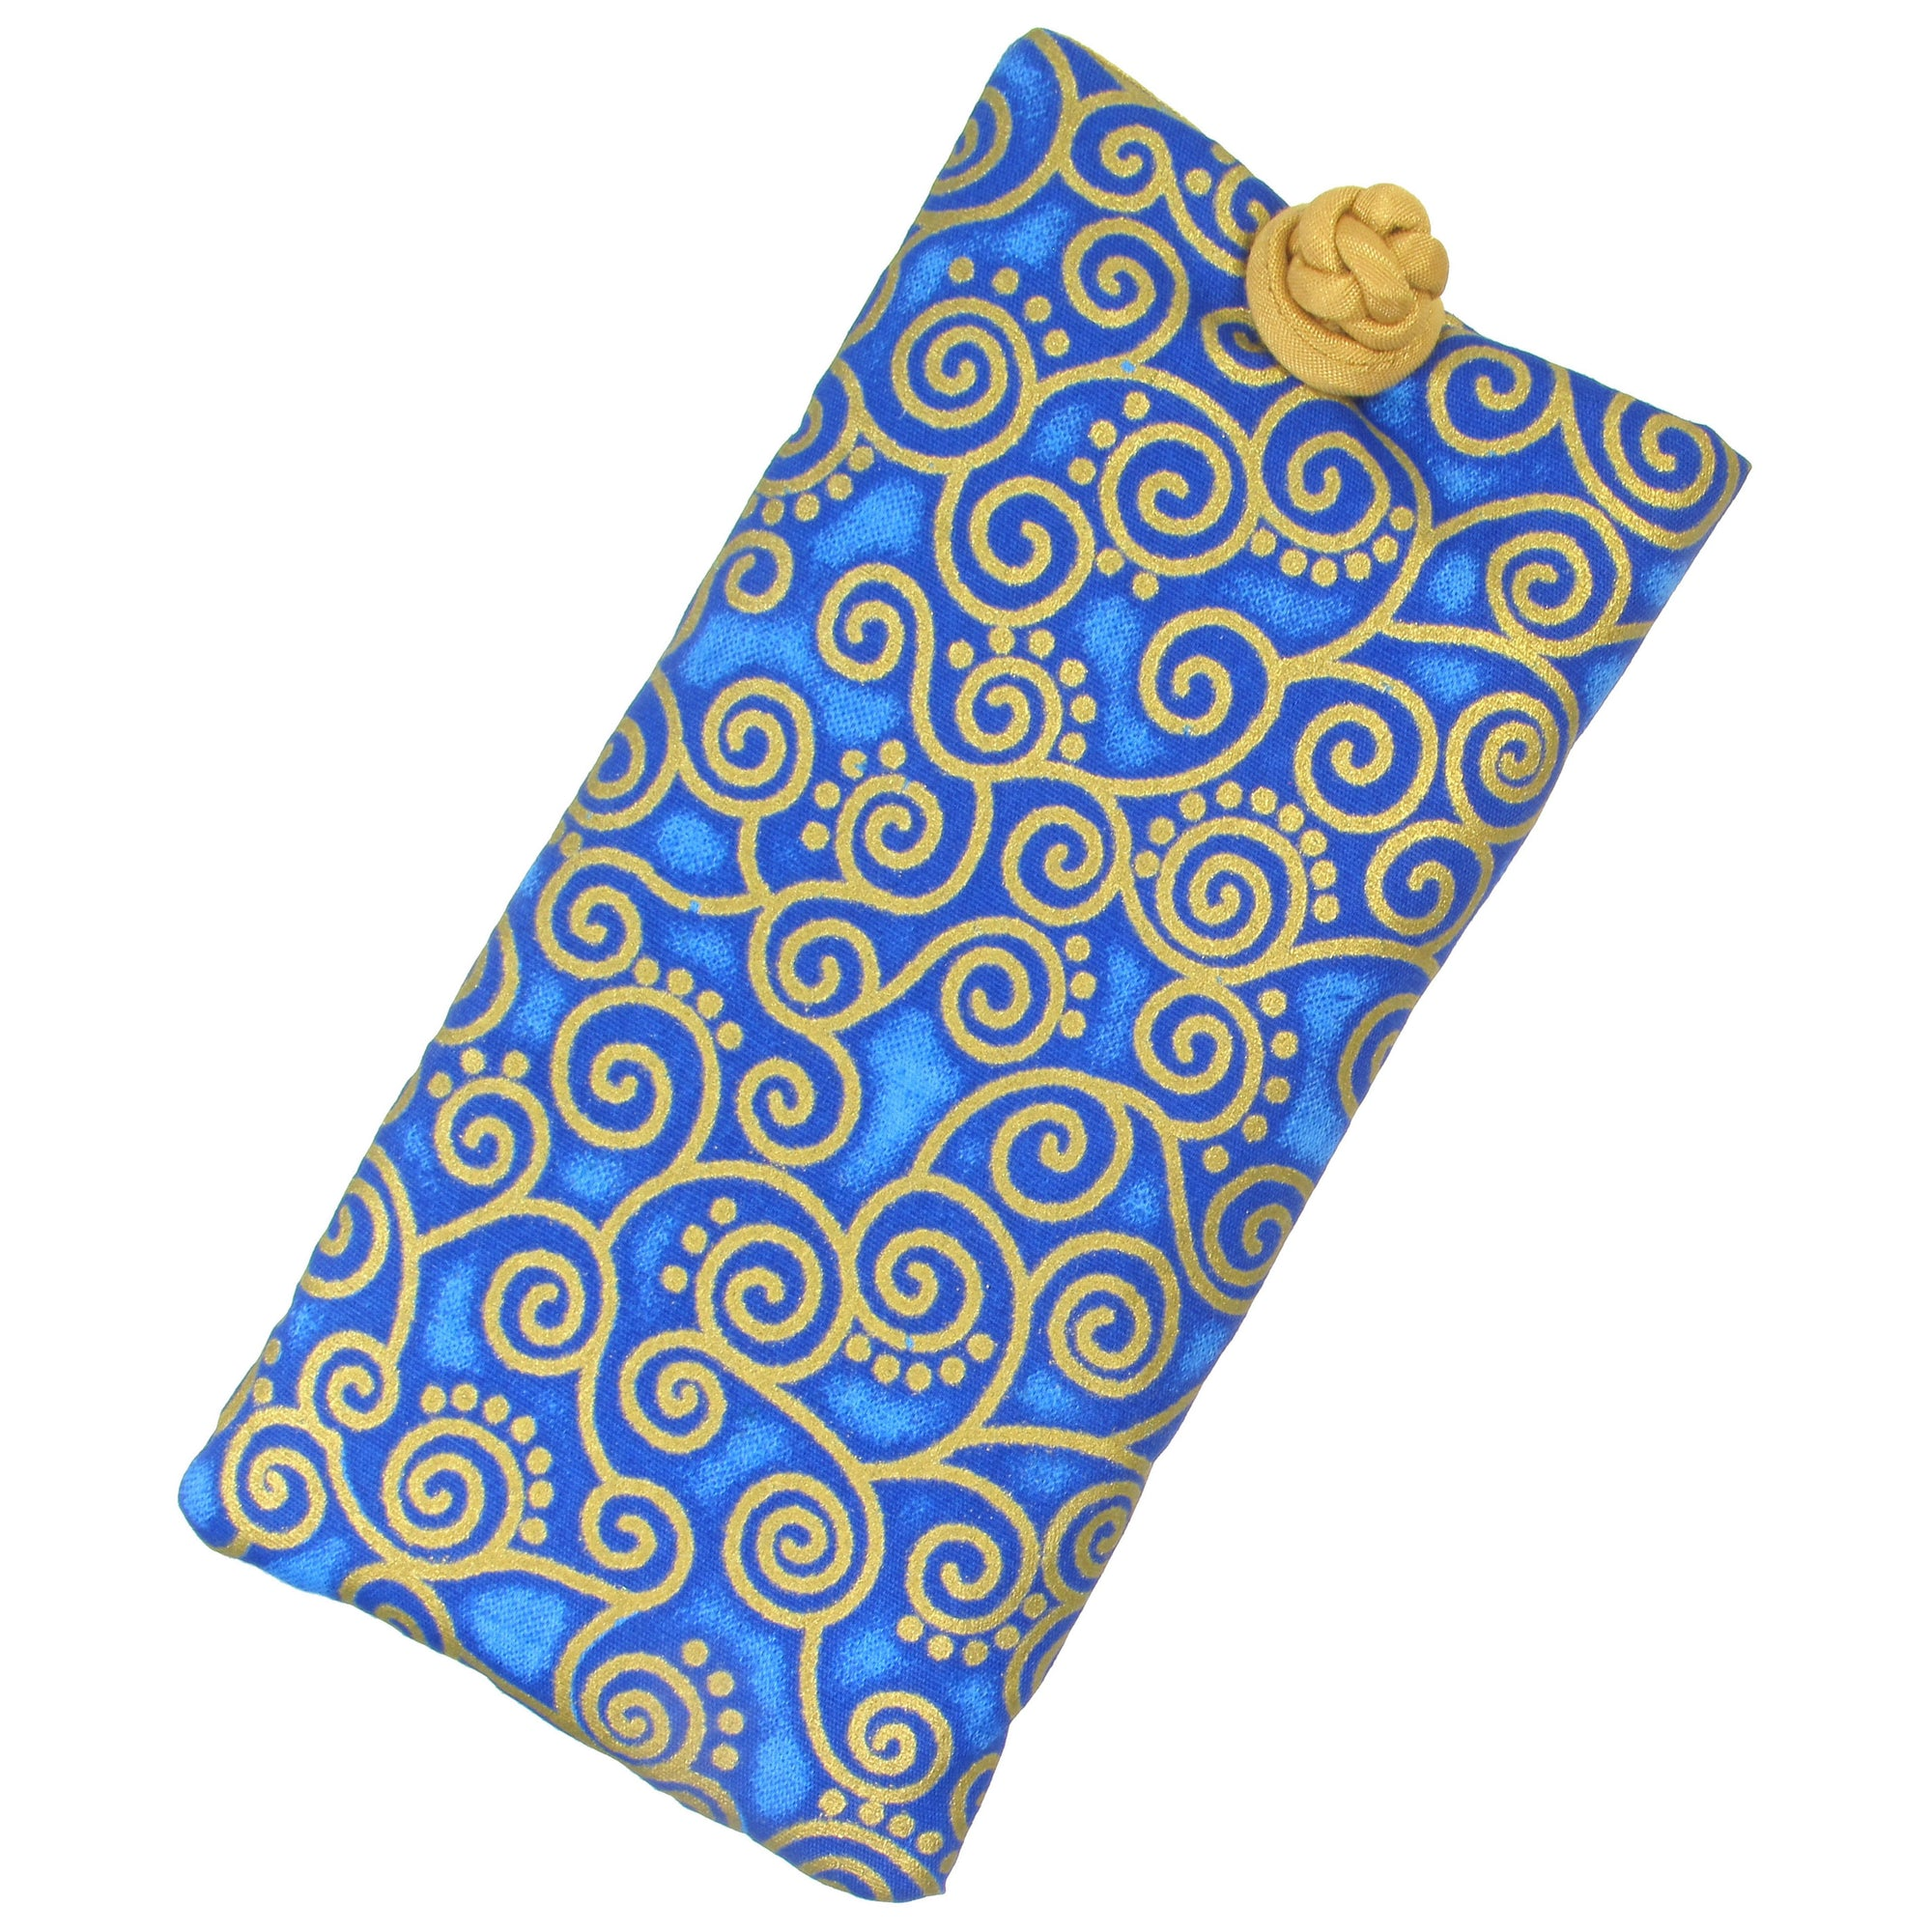 Cotton Soft Eyeglass Case, Cobalt Blue